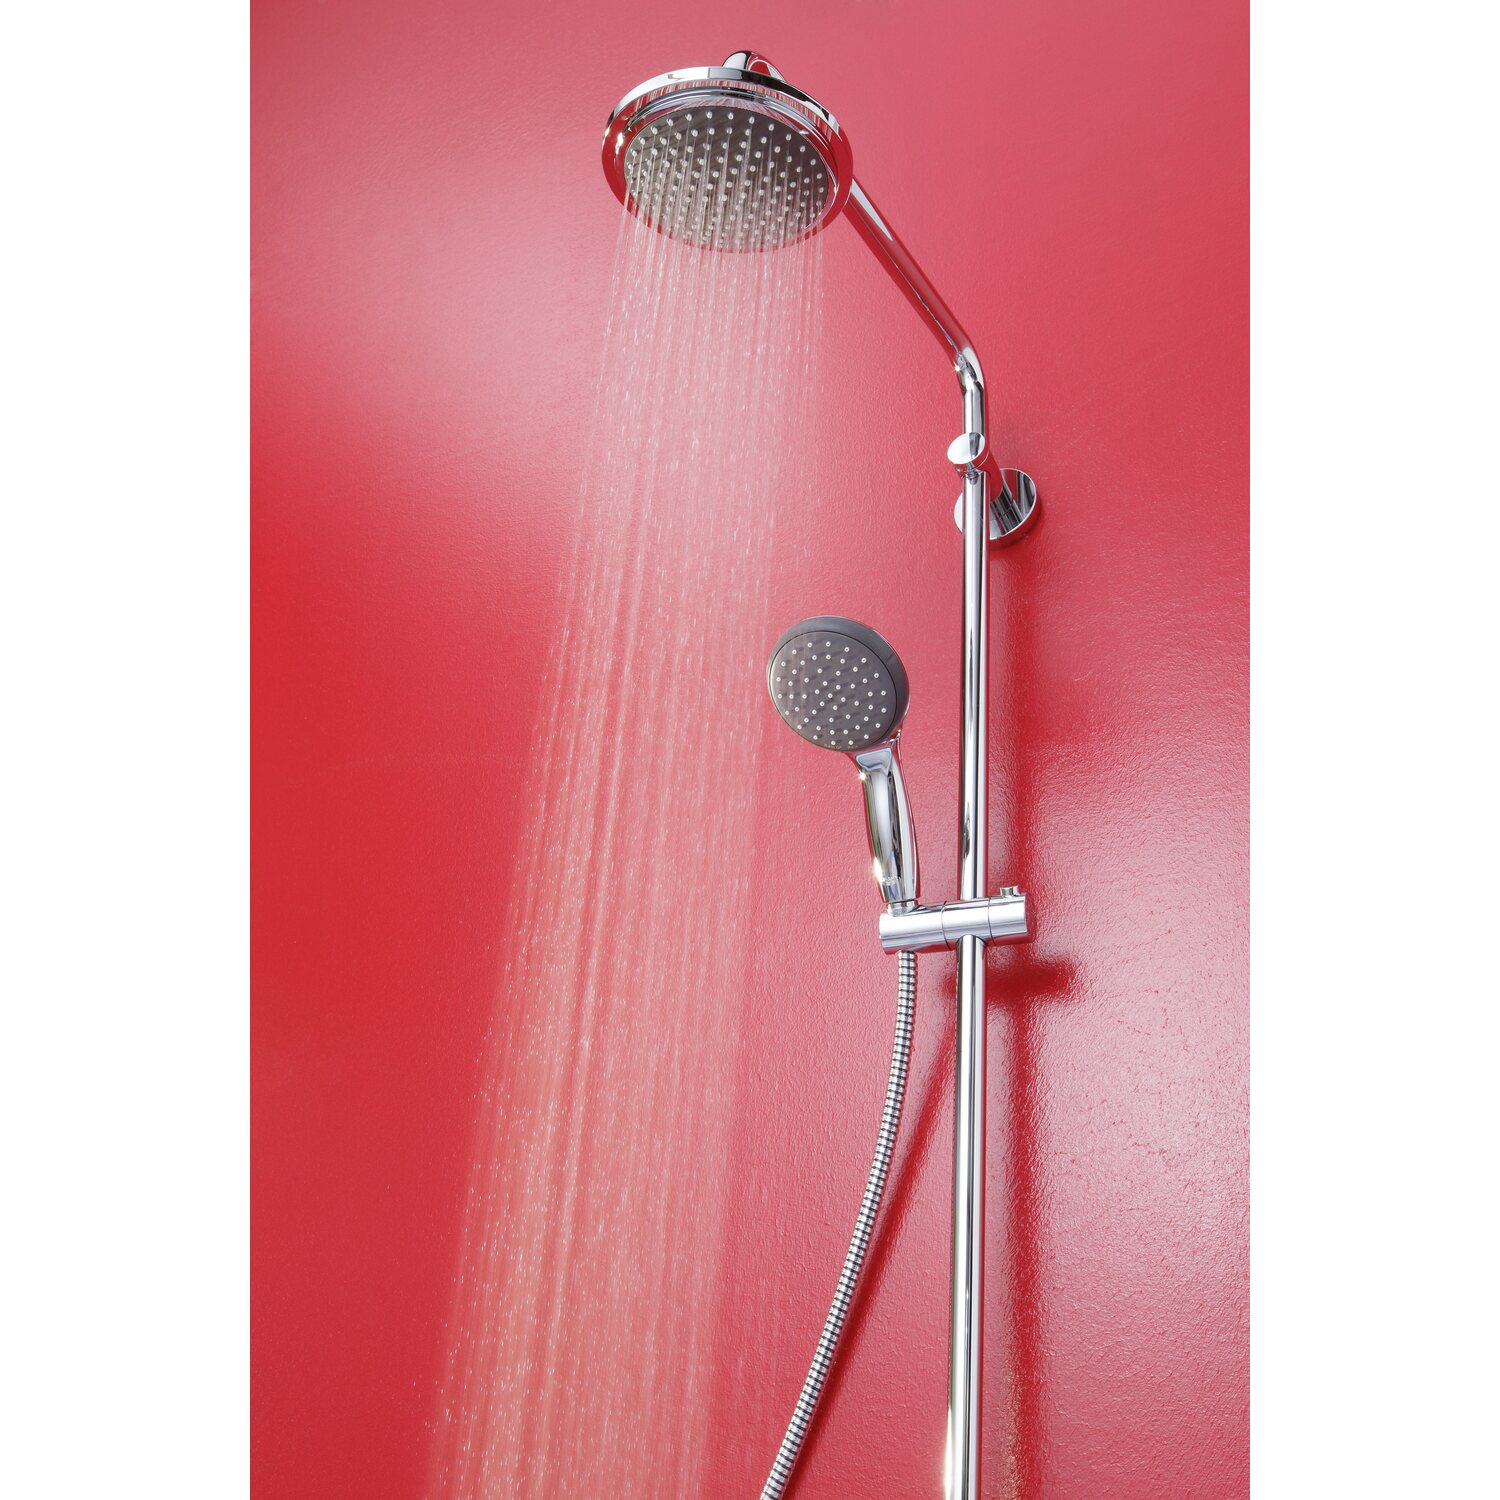 Outstanding Grohe Product Ornament - Luxurious Bathtub Ideas and ...